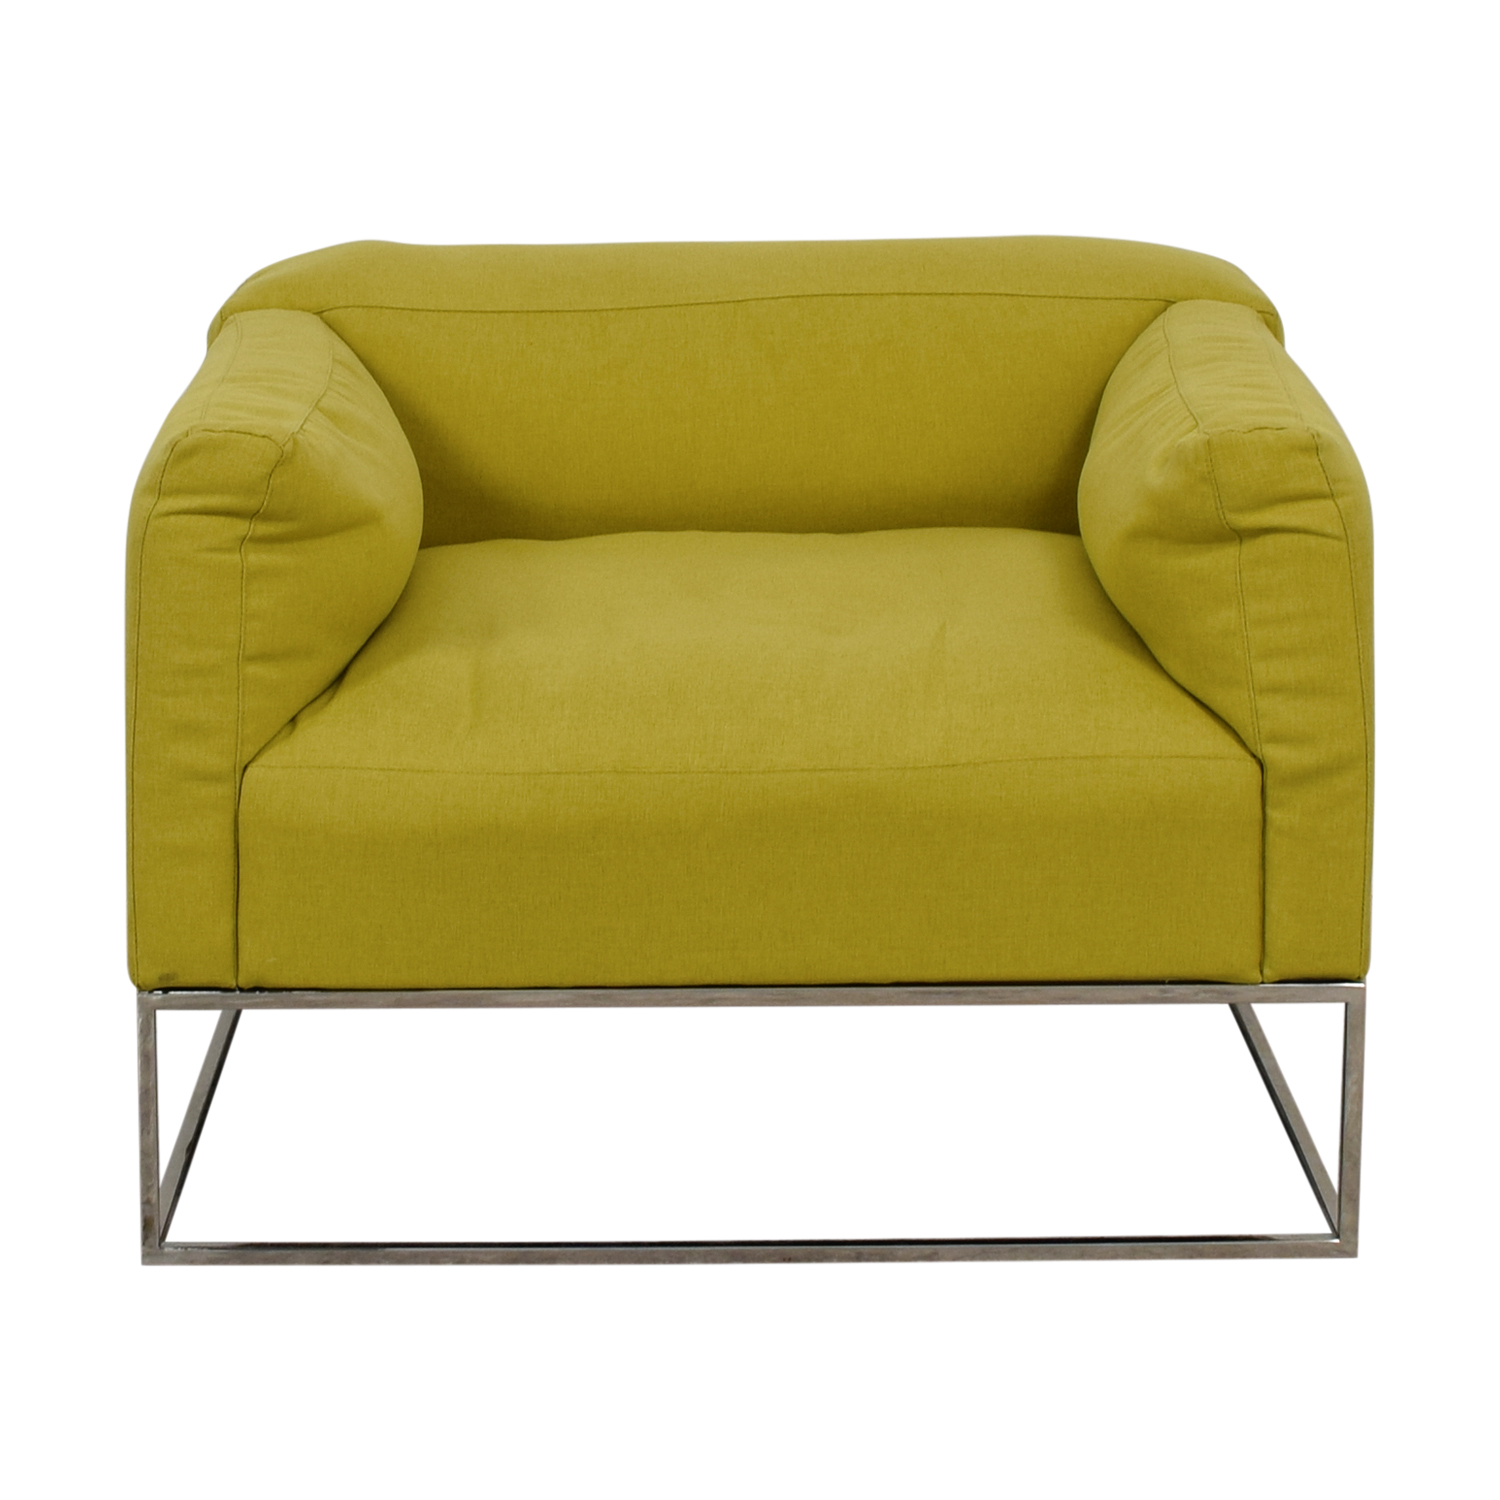 Pangea Furniture Pangea Furniture Cubic Chair Sofas